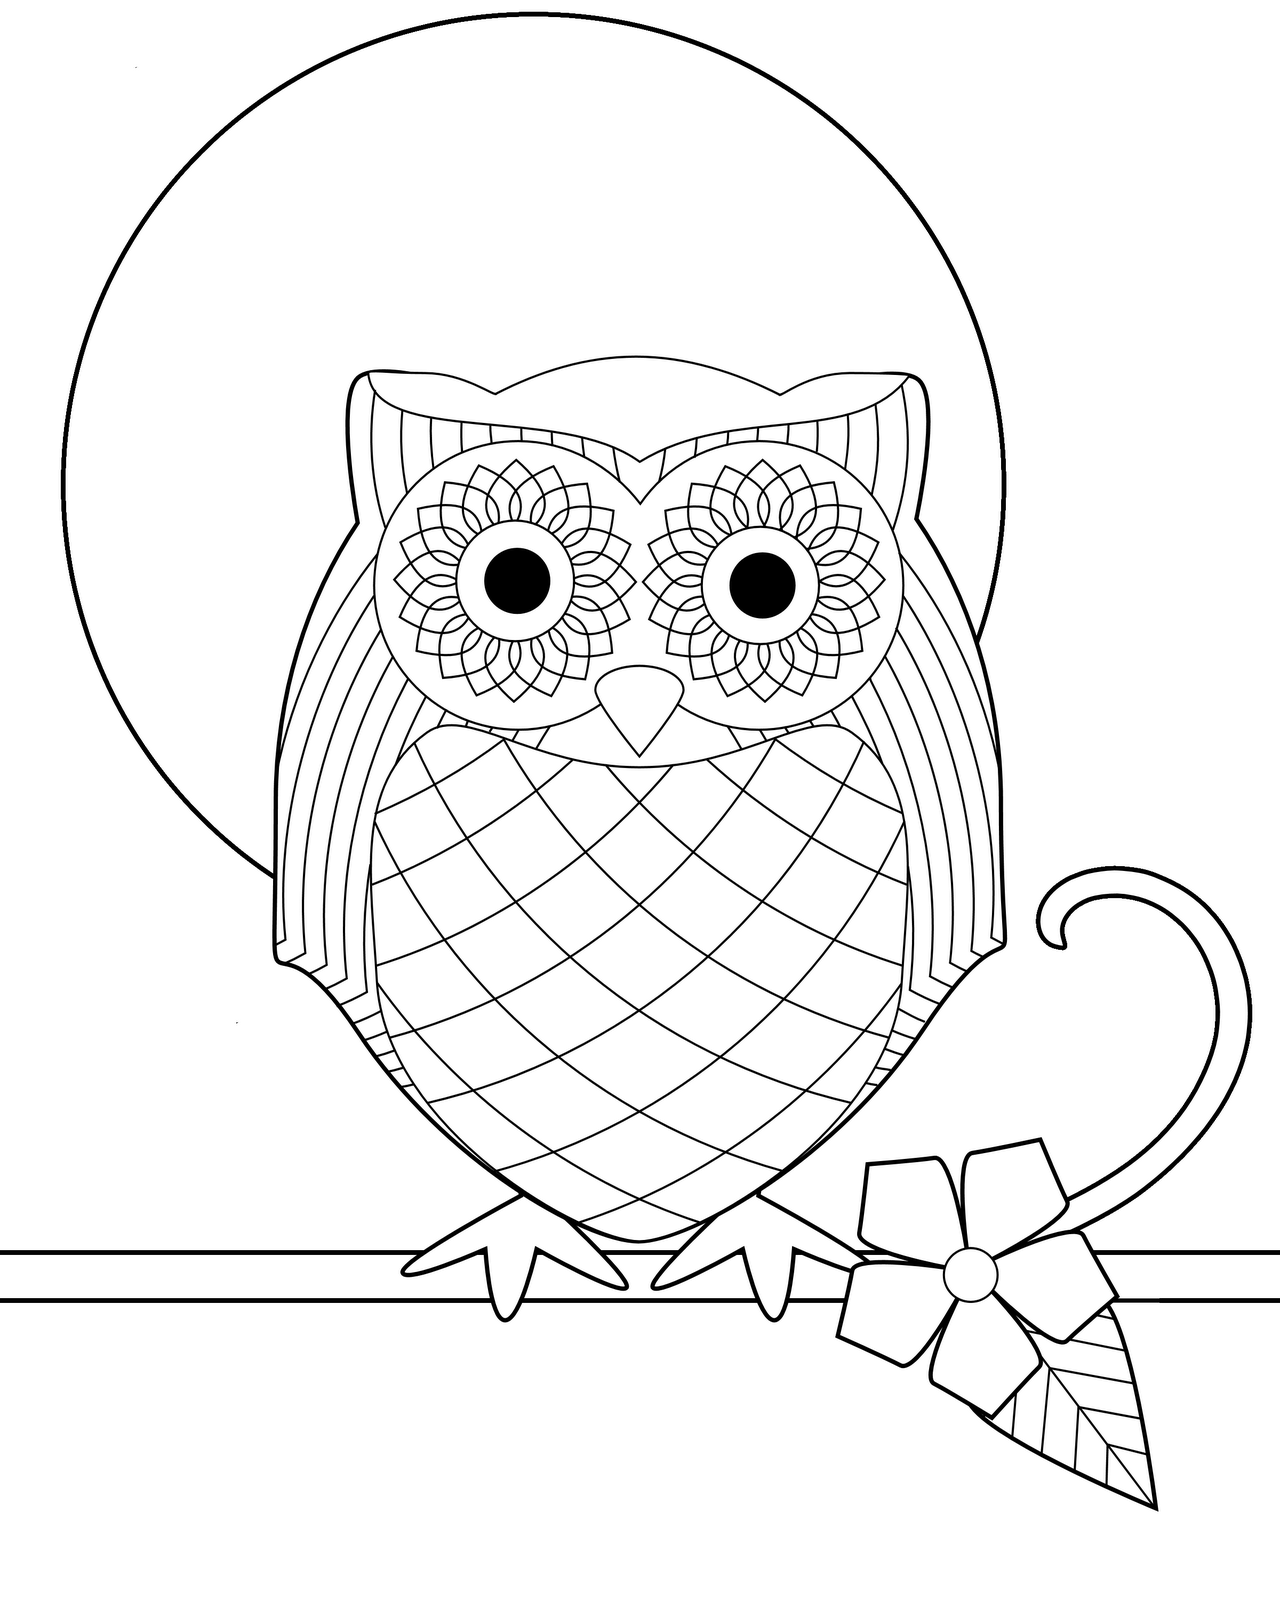 Owl Coloring Pages Pdf : Free printable owl coloring pages for kids